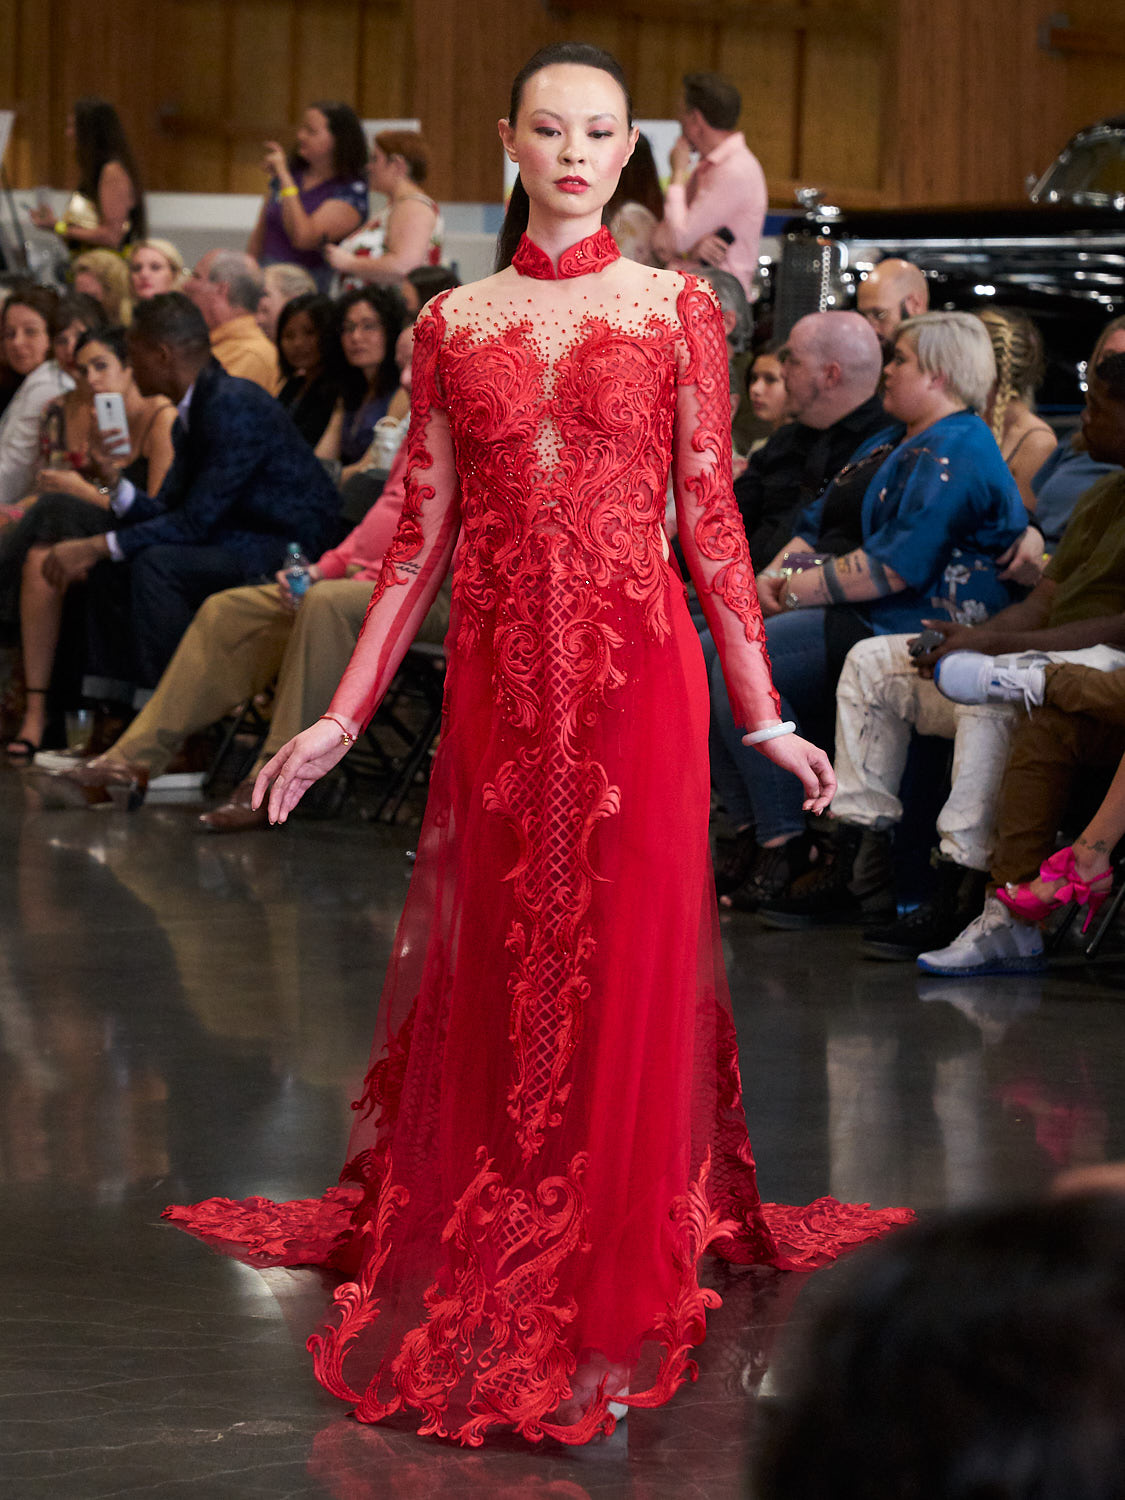 AMVISUALS-Couture-Cars-Fashion-Show-LeMay-Museum-Tacoma-Fashion-18.jpg